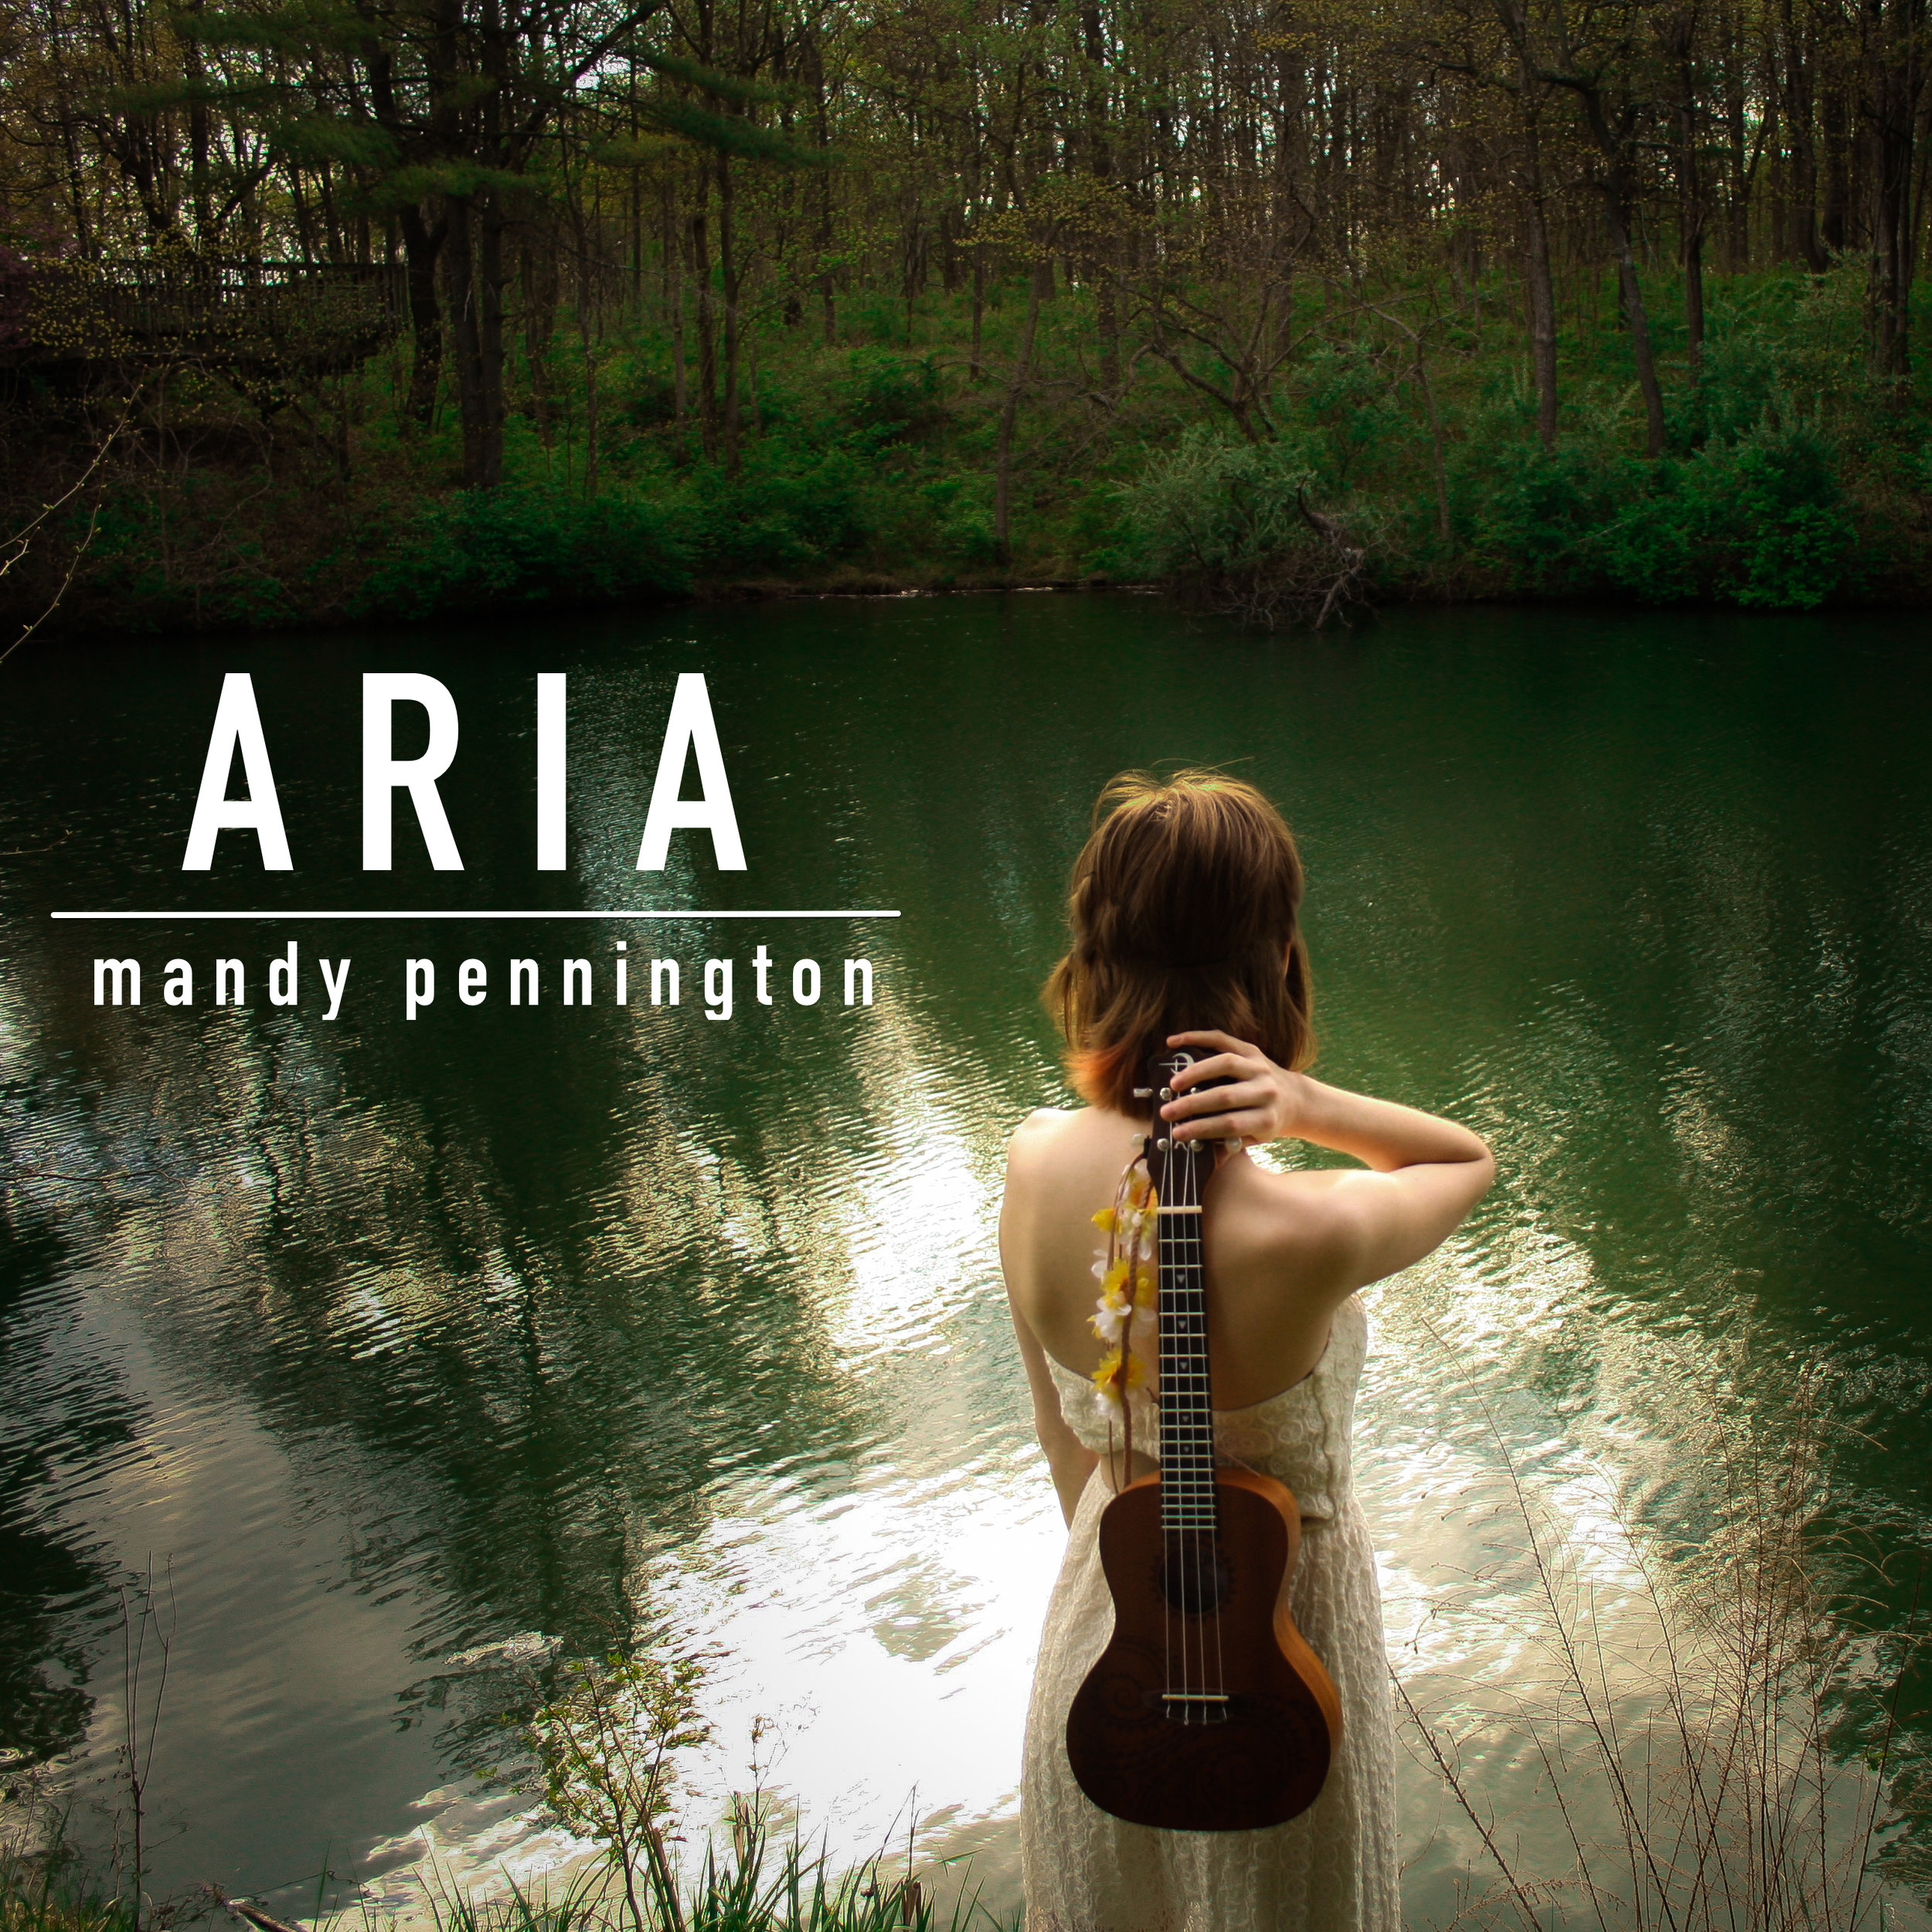 Aria - EP - released May 27, 2016